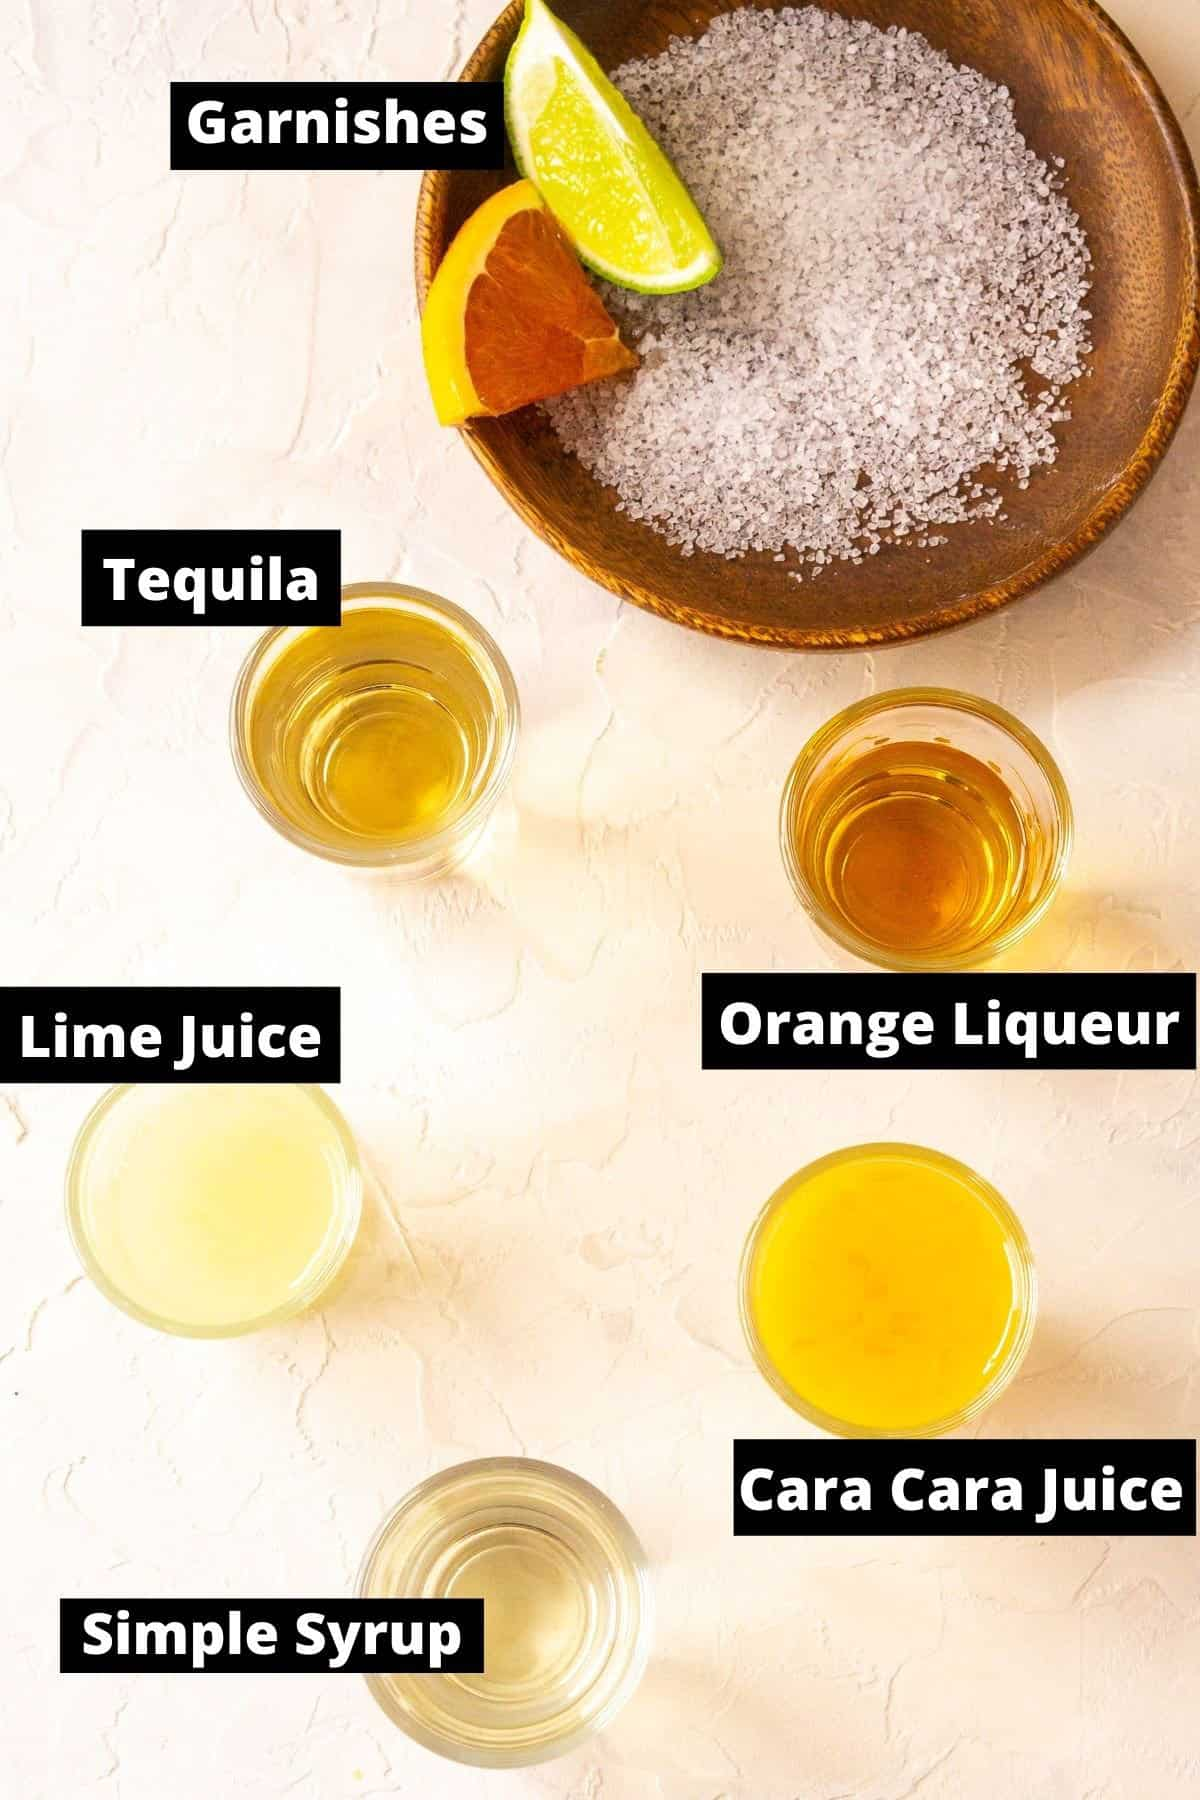 The ingredients with black and white labels on a white background.